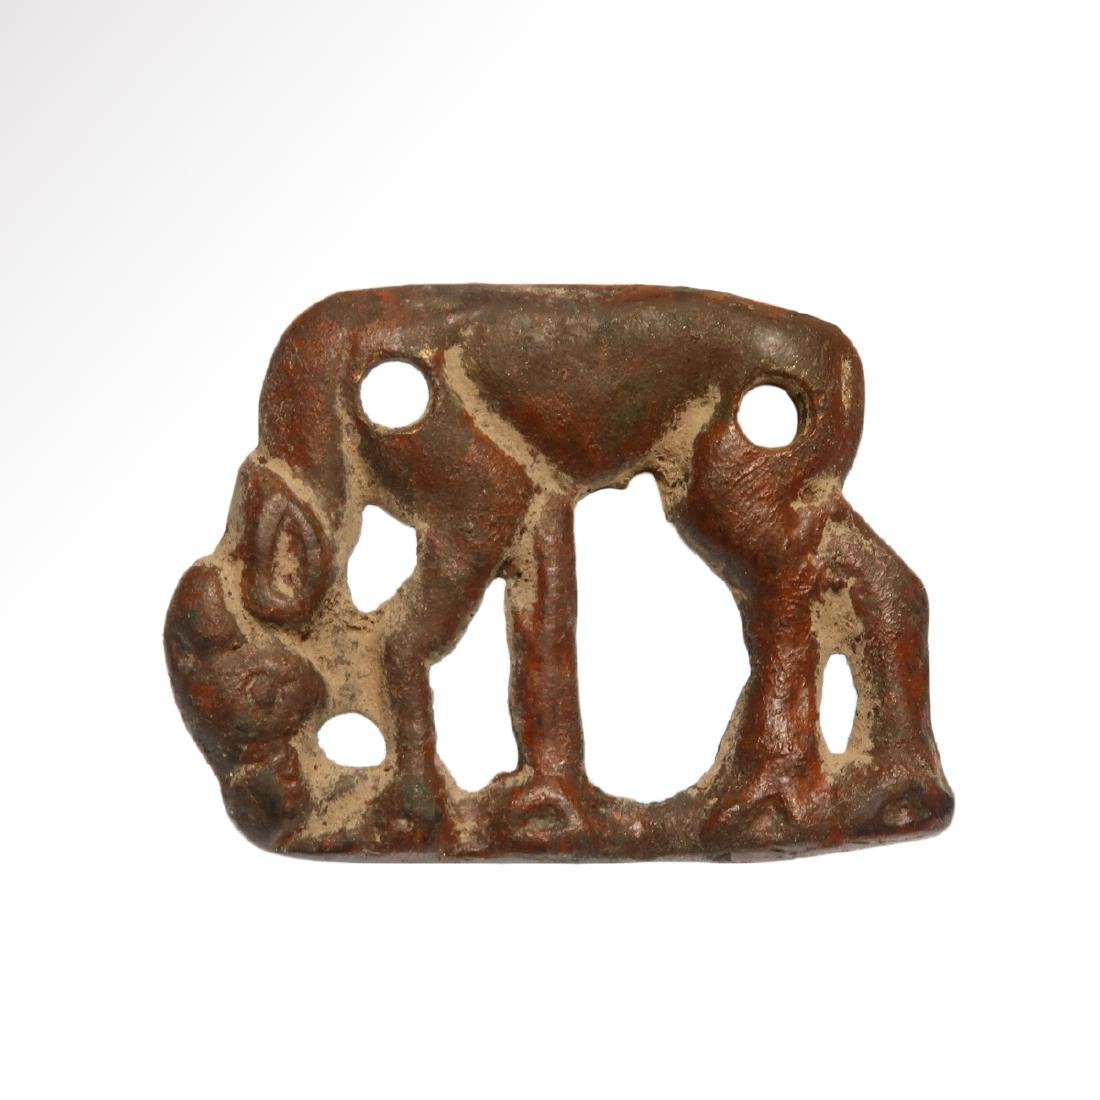 Scythian Openwork Plaque With Grazing Stag, c. 5th -